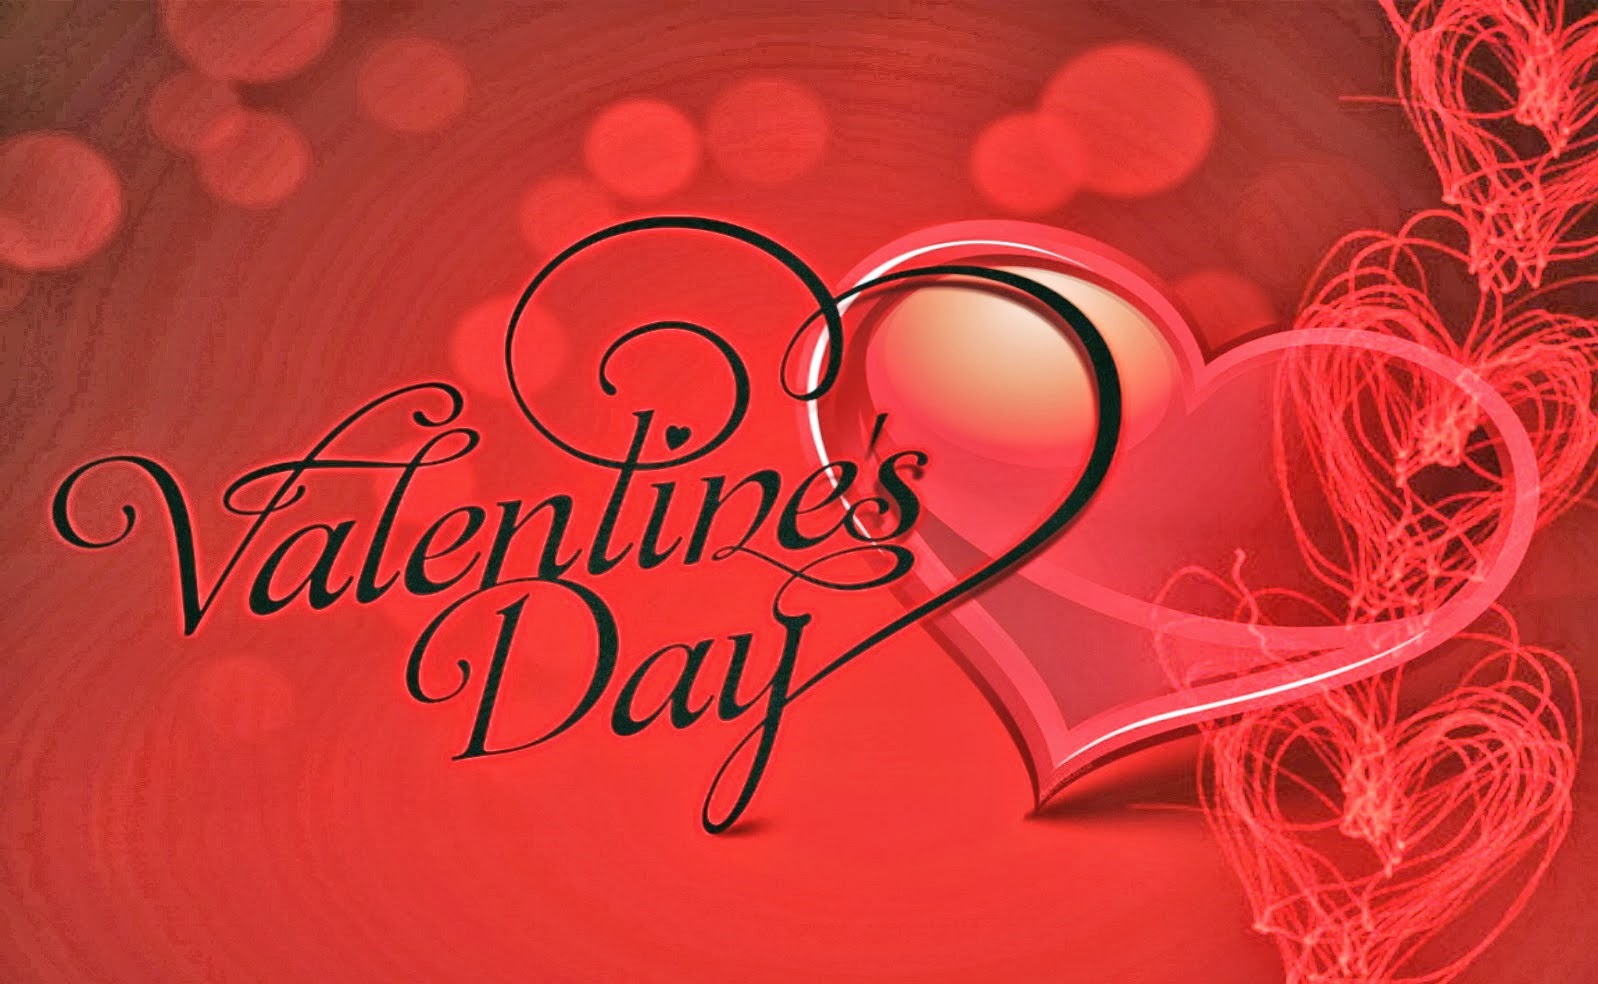 happy valentines day picture image hd wallpaper